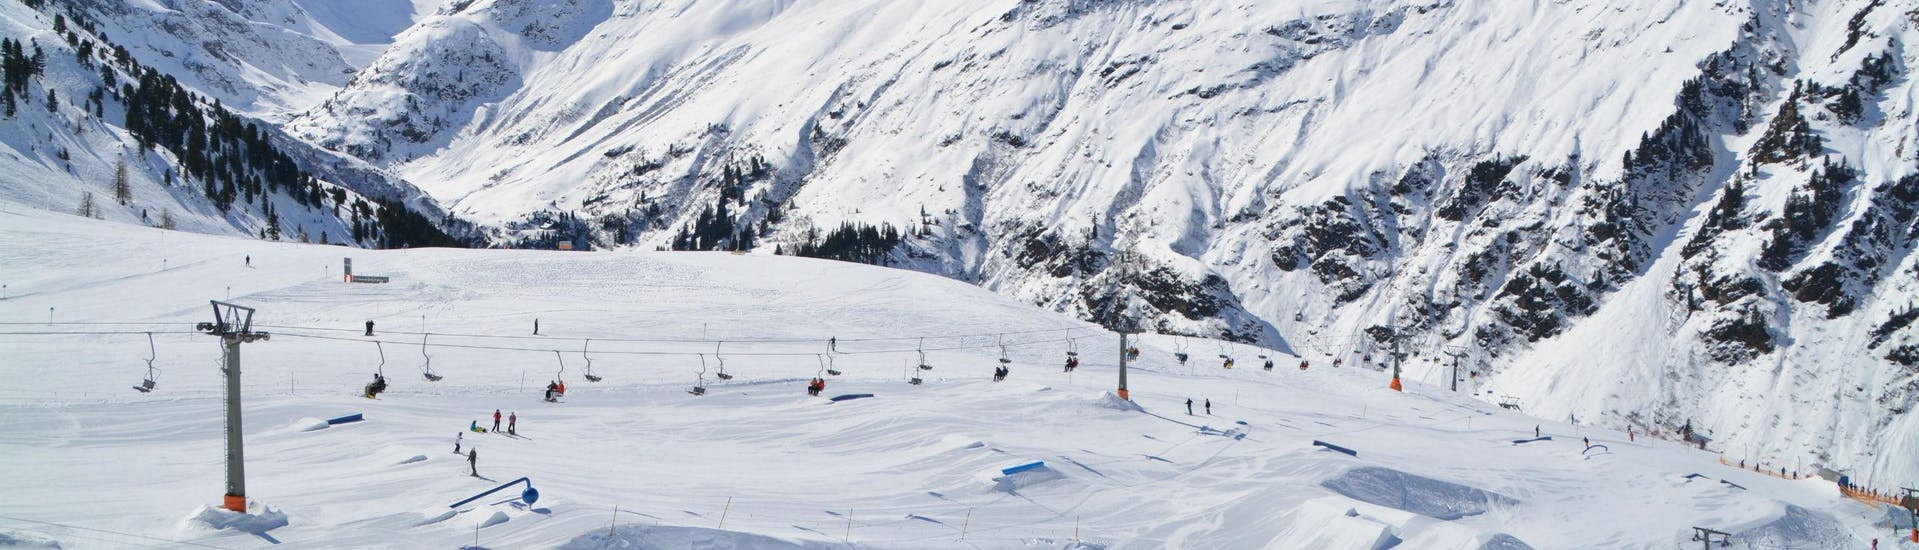 "A view of the ski slopes in St. Anton, also known as the ""cradle of alpine skiing"", where local ski schools organise ski lessons for winter sports enthusiasts who want to learn to ski."